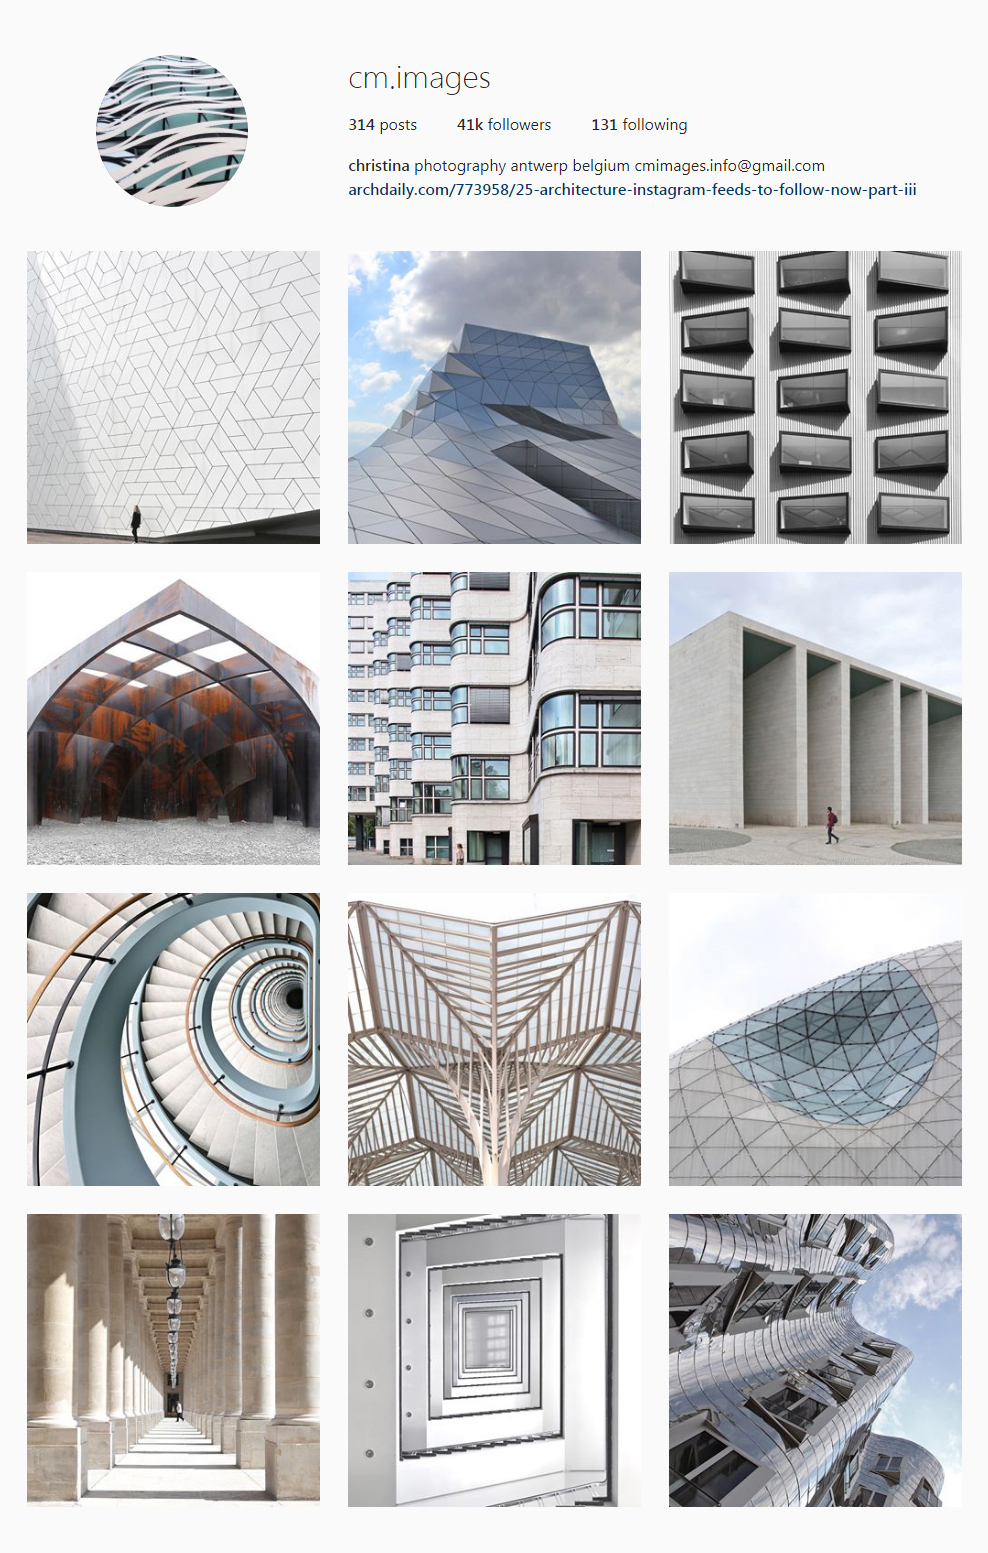 Best Architectural Instagram Feeds of 2017 - cm images